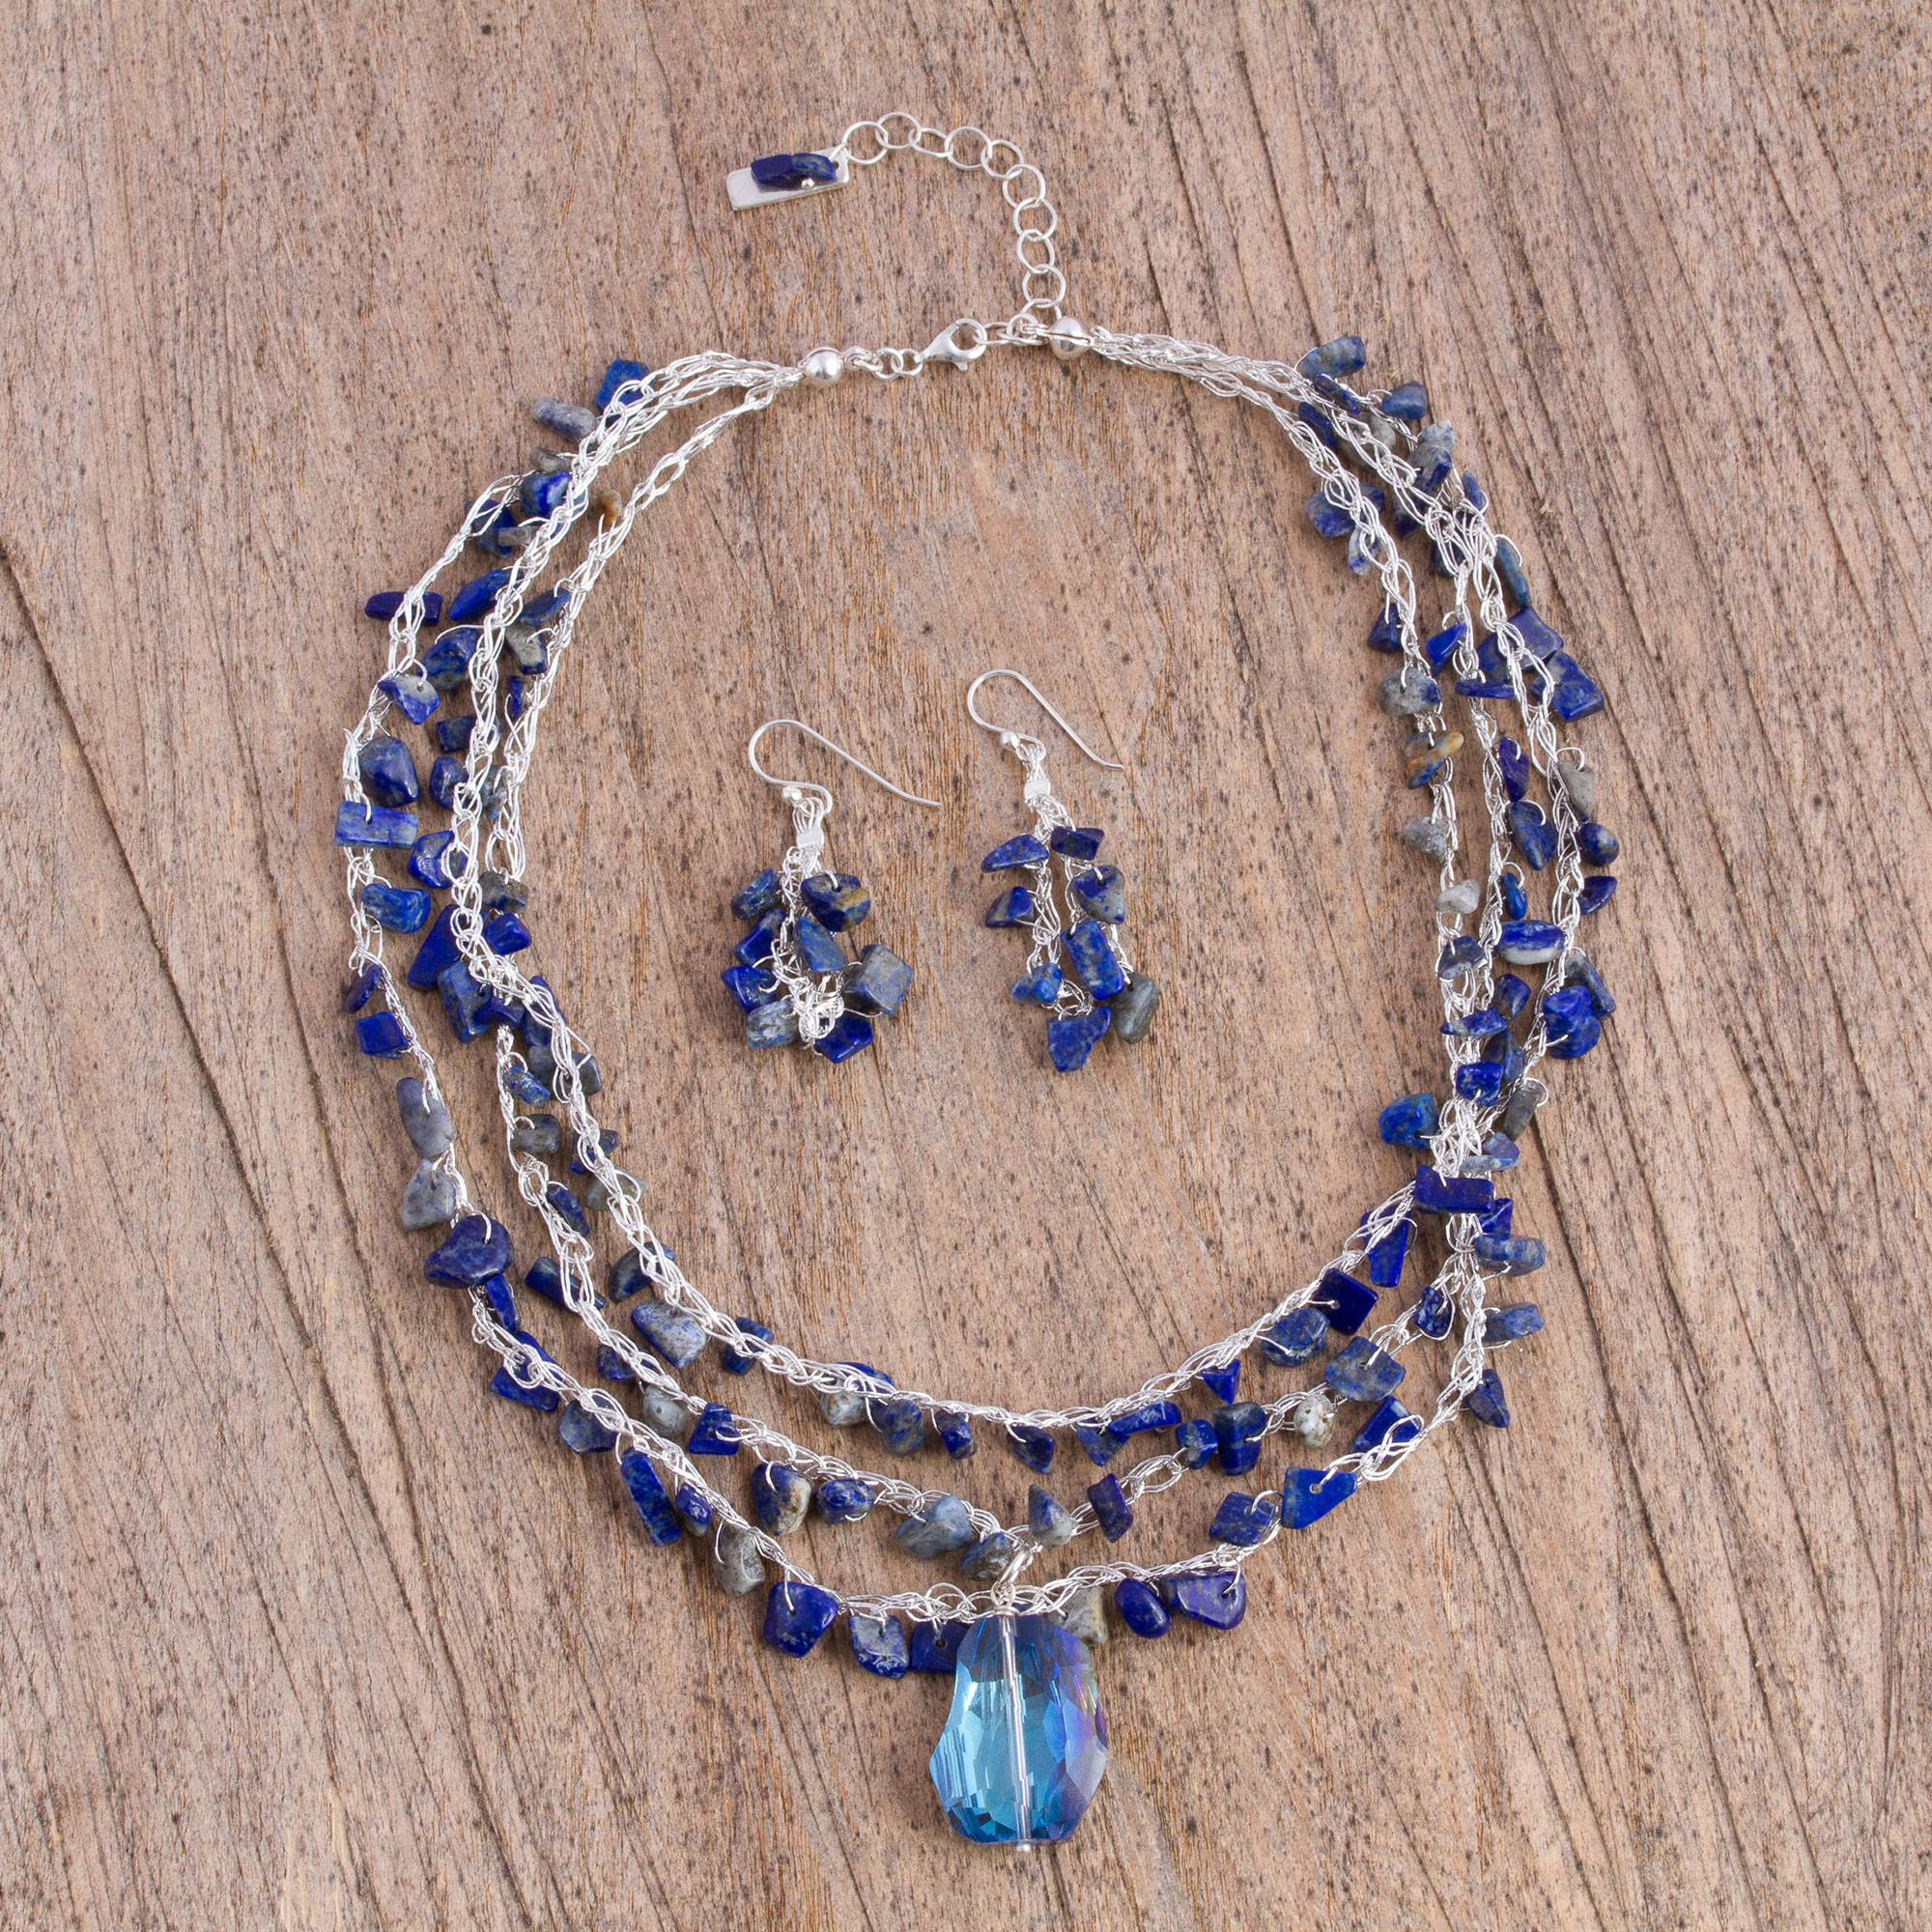 matte eye silver yoga pic beaded products of handmade bracelet copy necklace gemstone sodalite tiger buddha